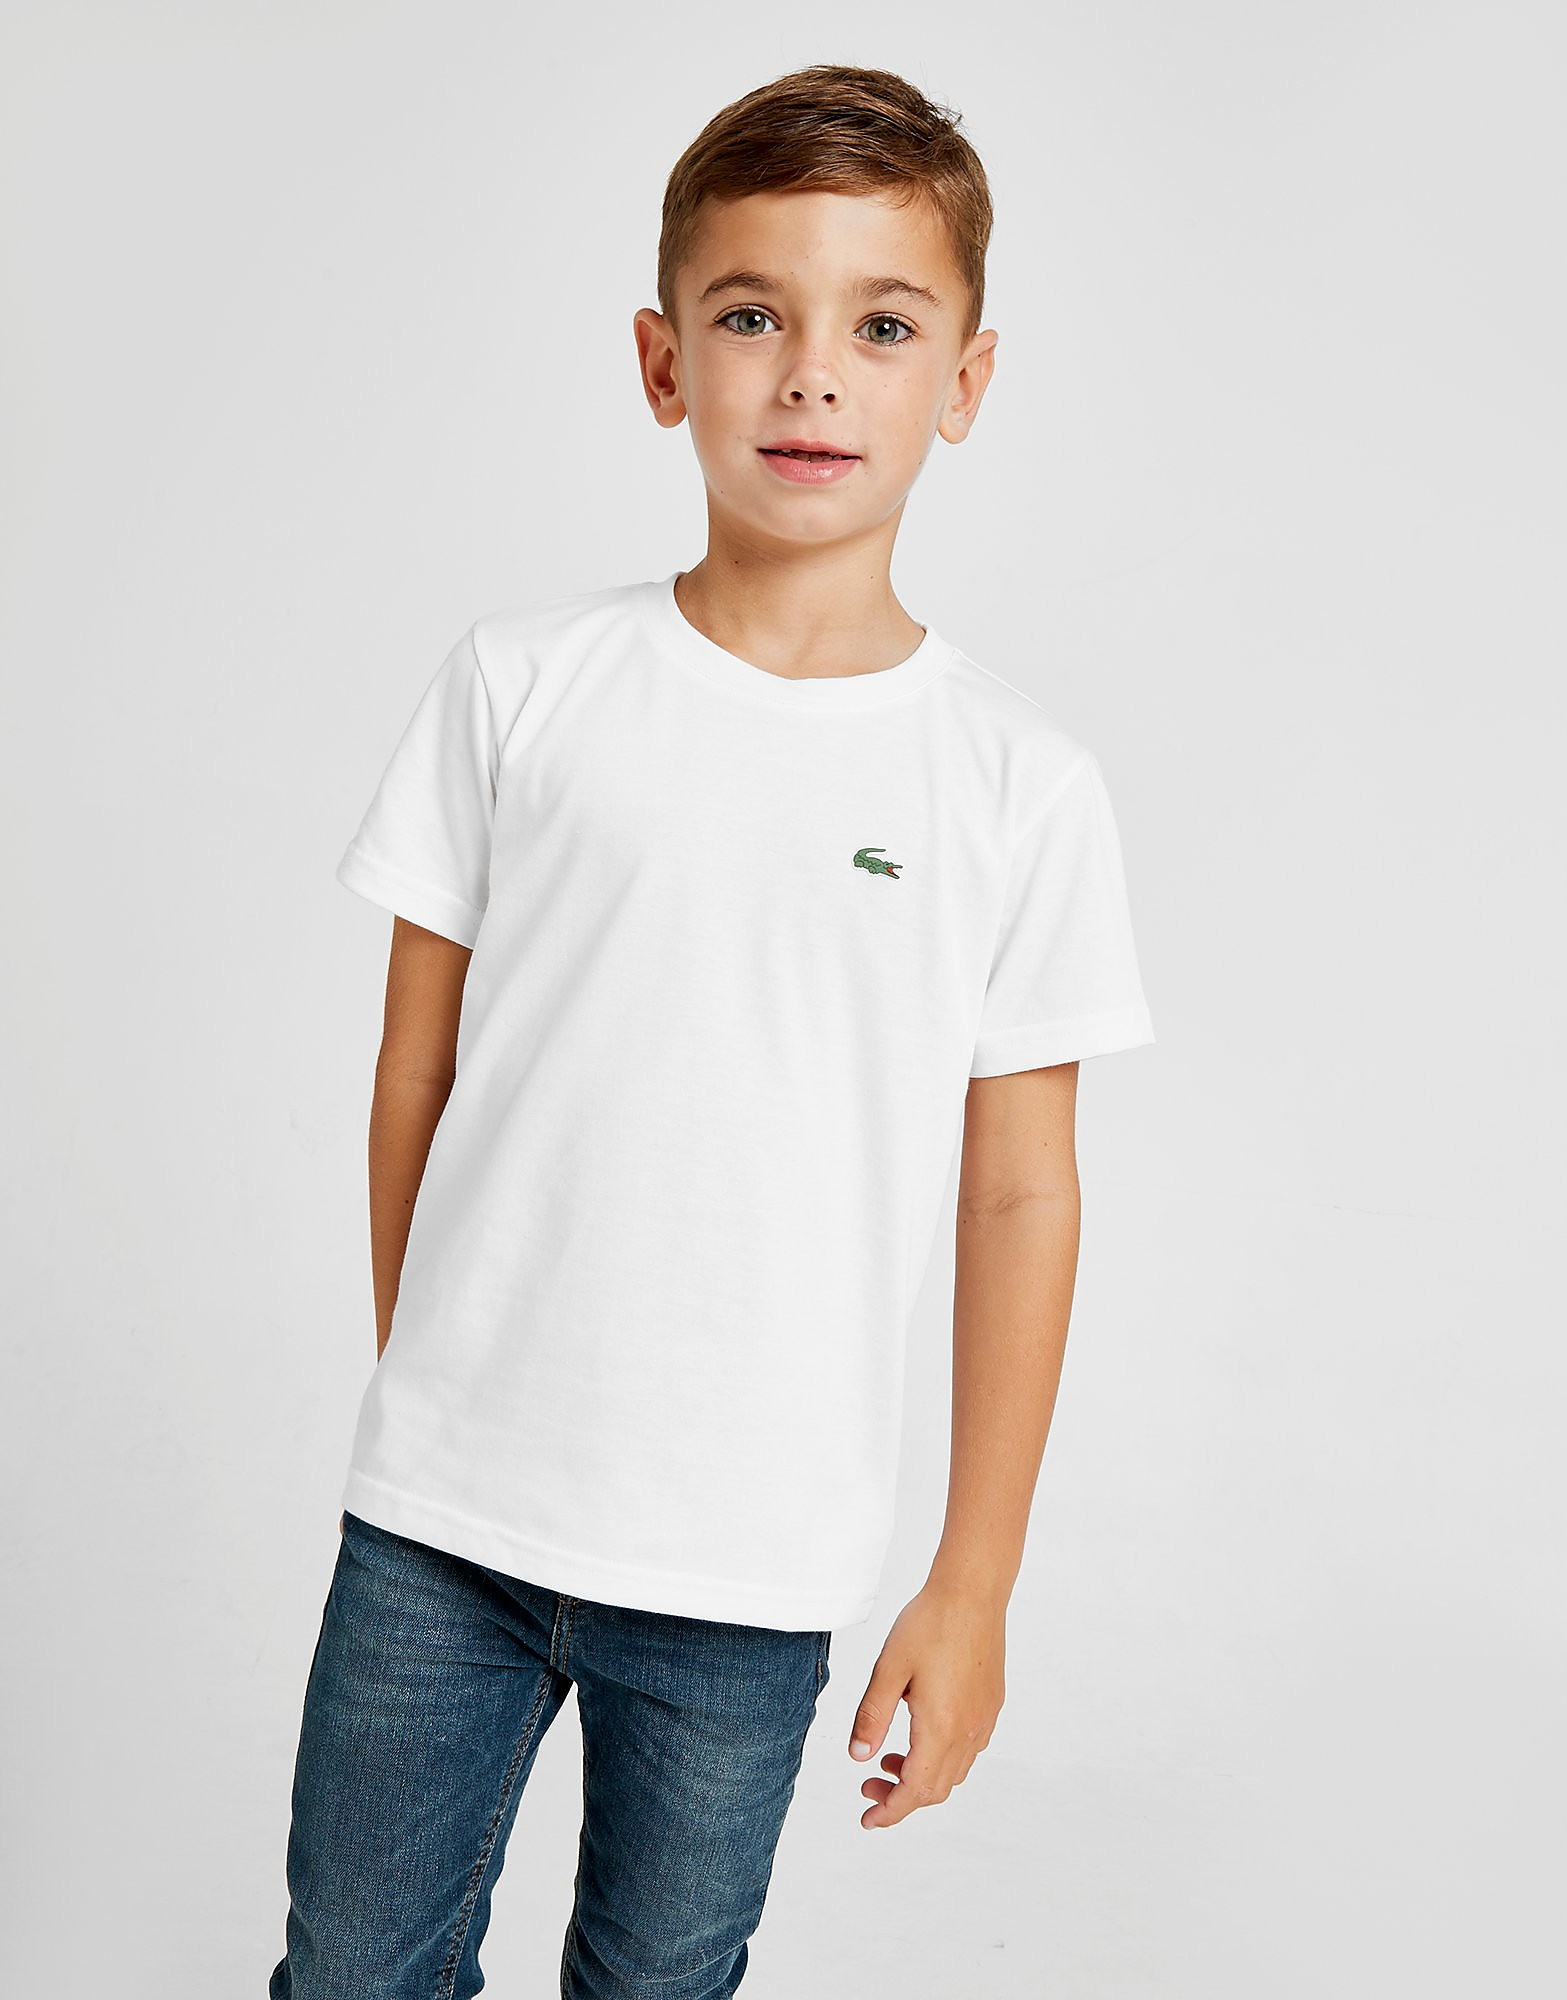 Lacoste Small Logo T-Shirt Children's